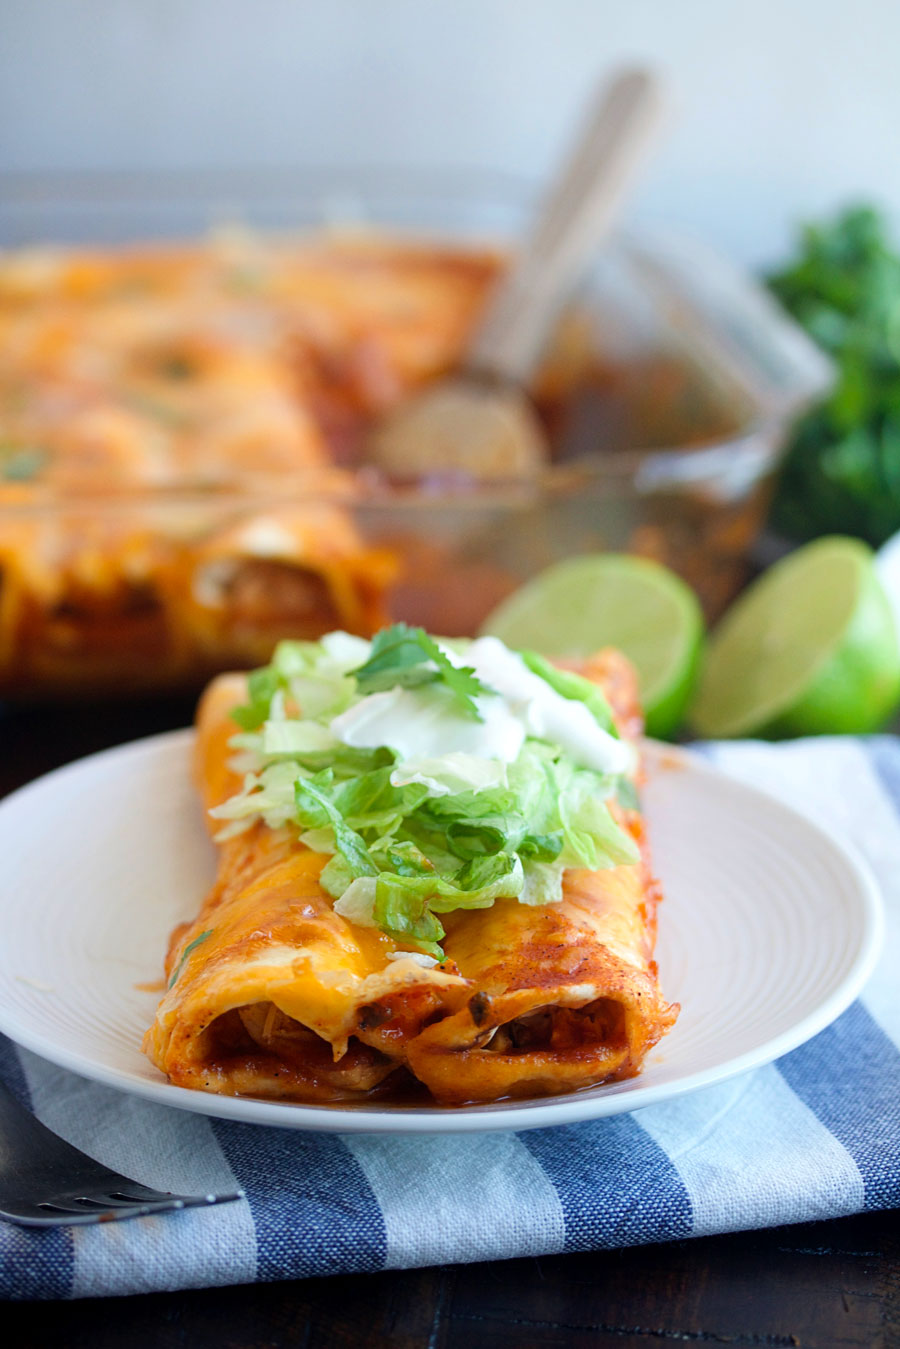 a plate with two instant pot chicken enchiladas on it.